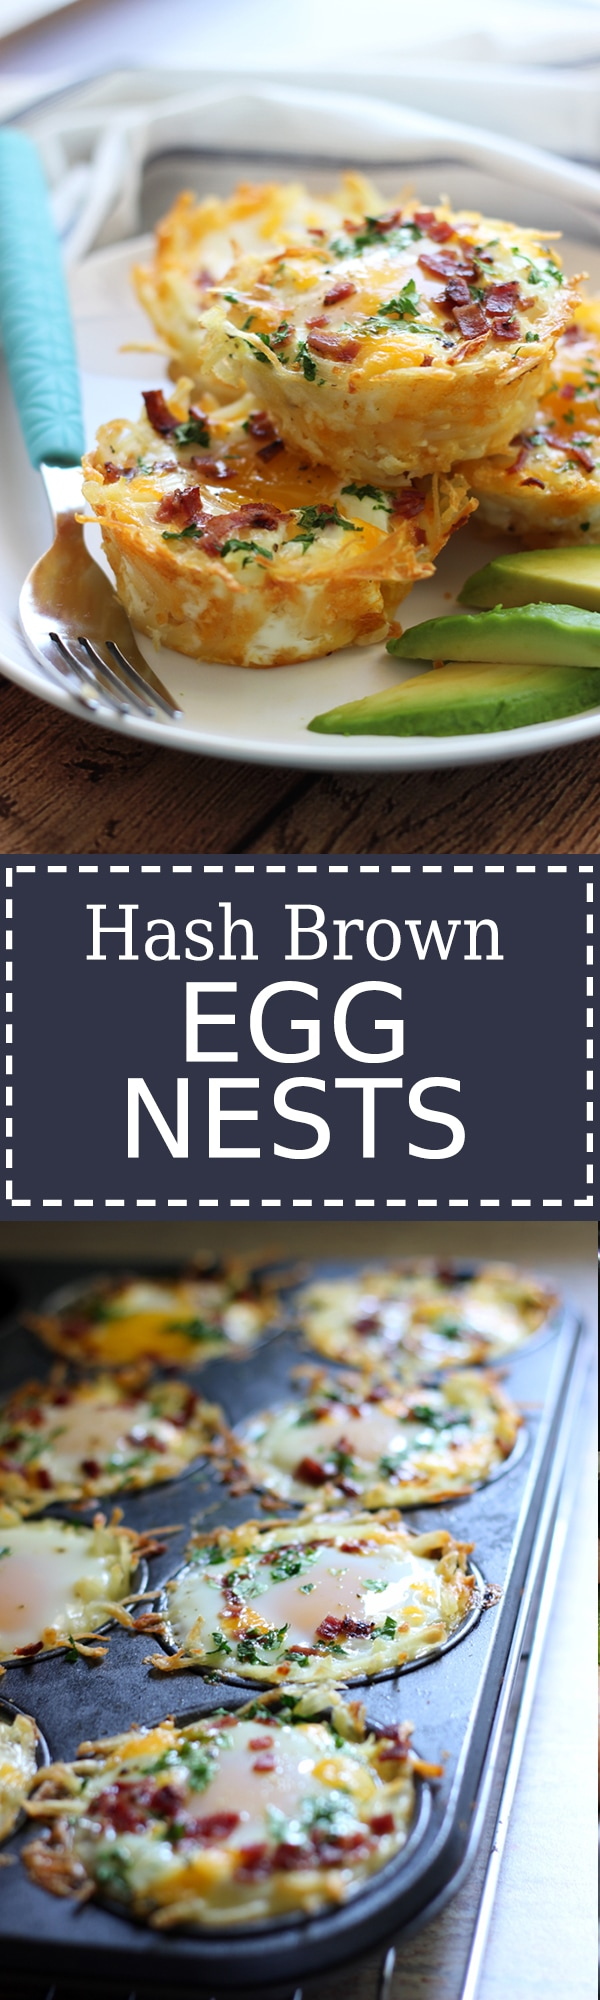 Shredded hash browns and cheese nests baked until crispy topped with a ...